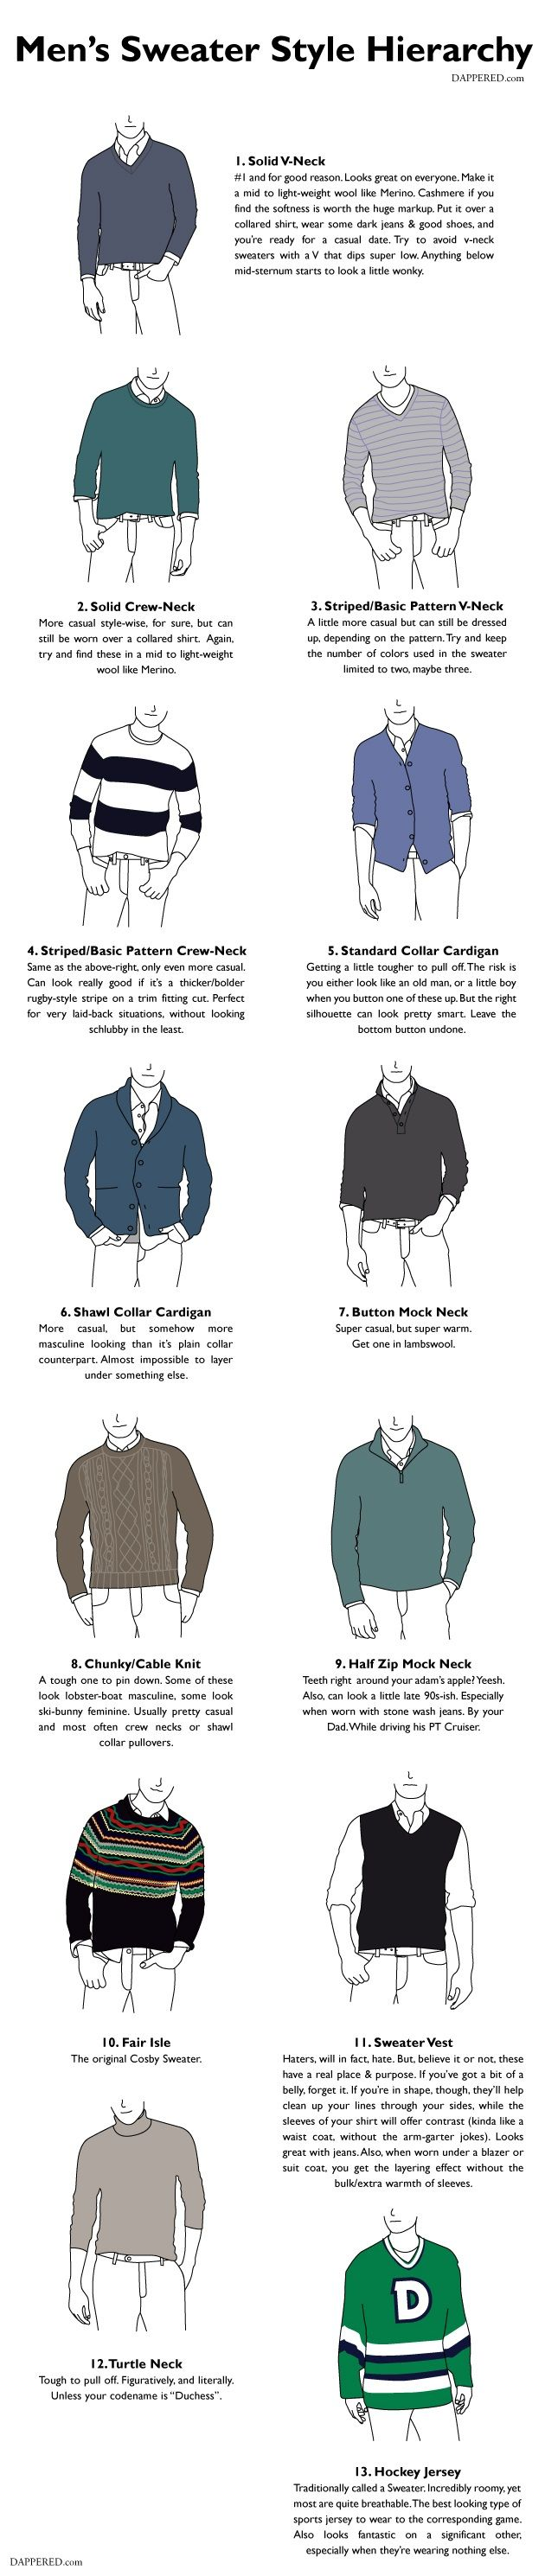 sweaters info graphic by dappered